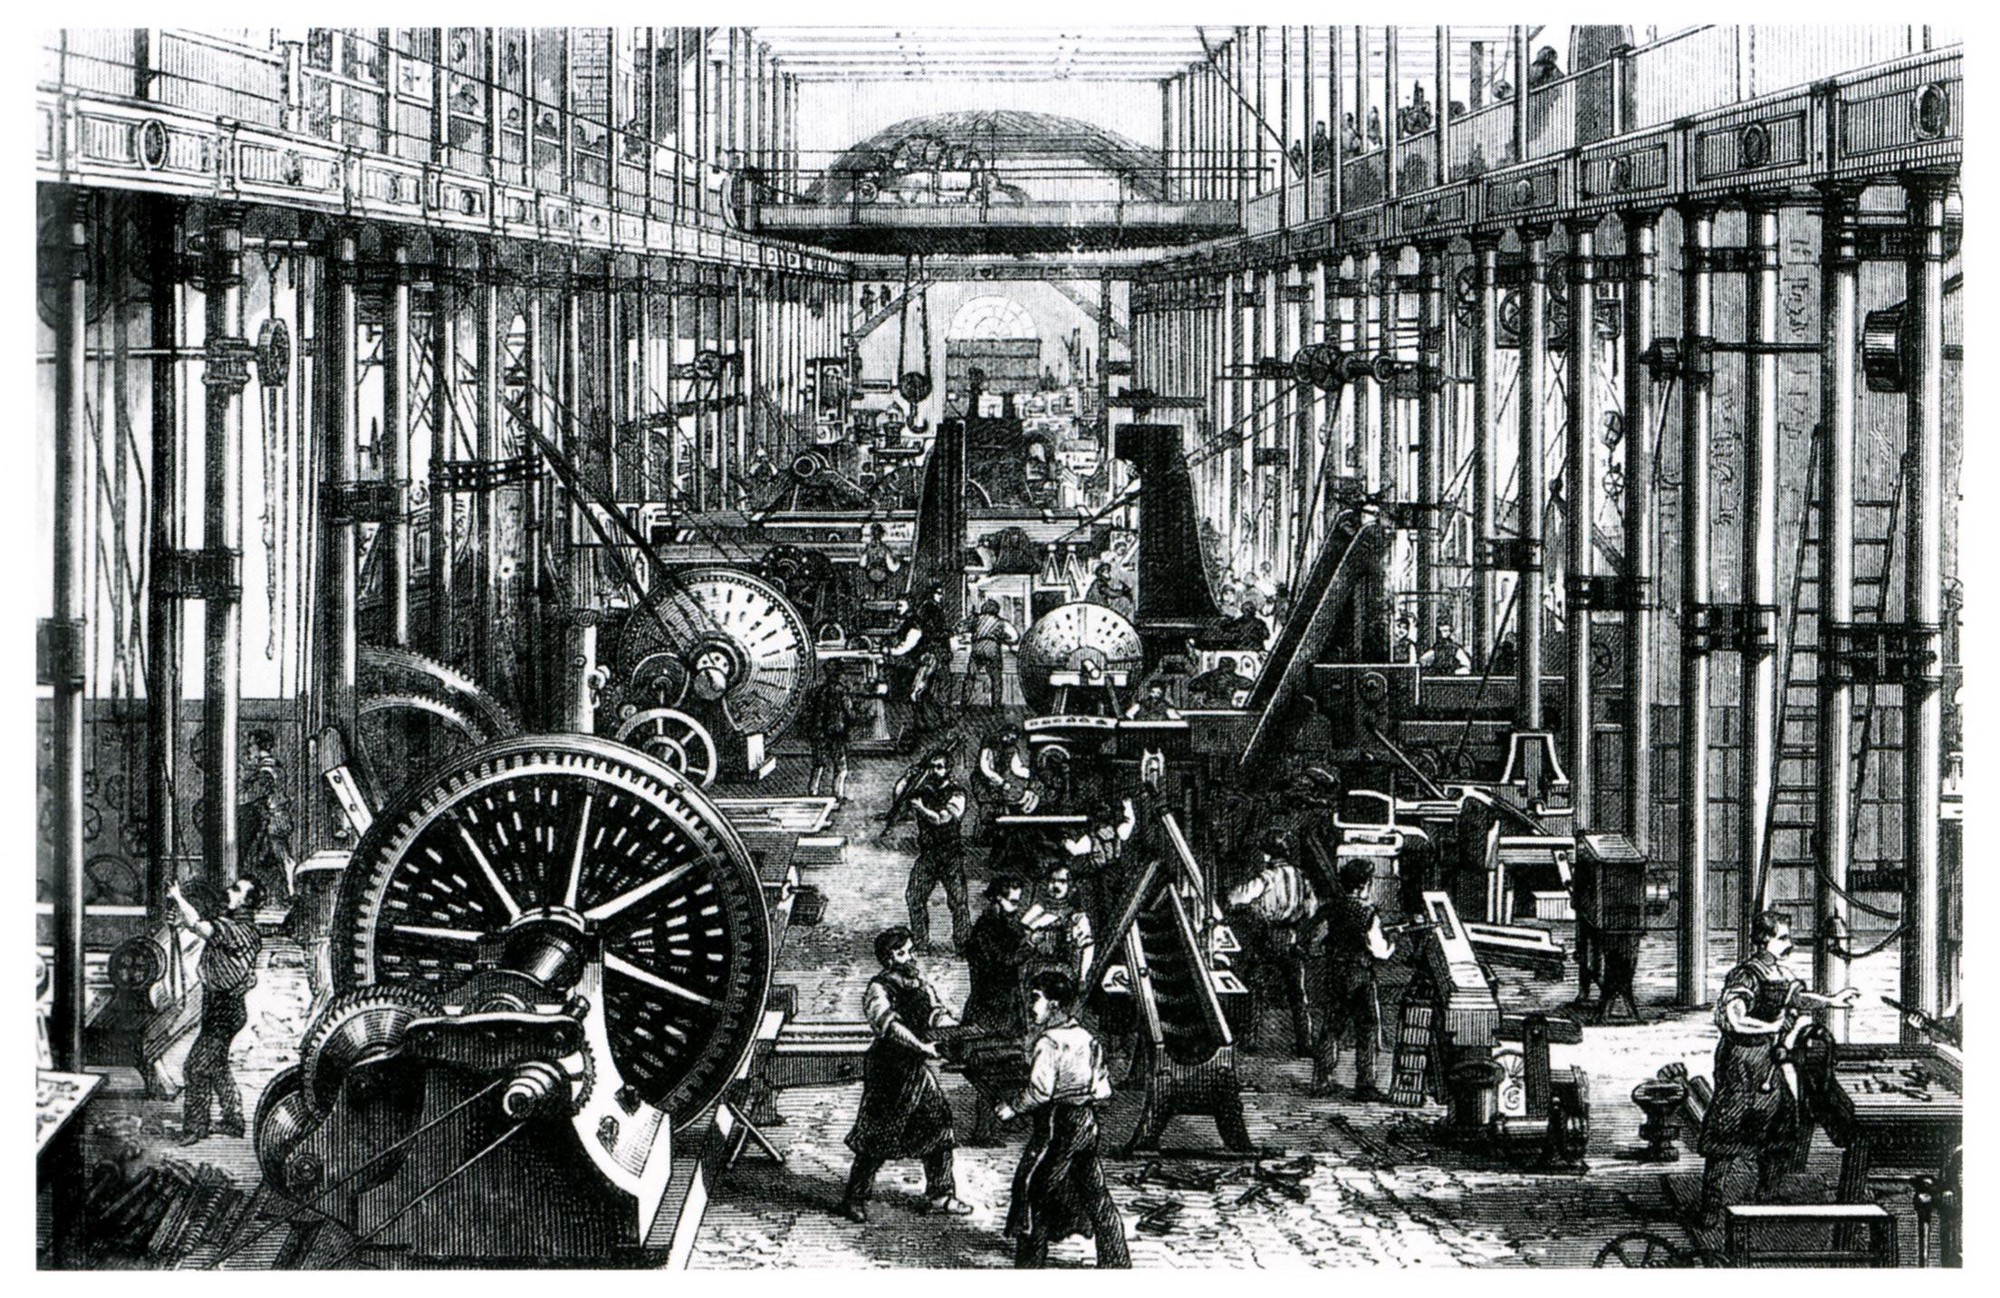 an overview of the industrial revolution in the europe during the 18th century In great britain, the enclosure movement of the early 18th century had created a large, socially mobile labor force, leading to the industrial revolution in british manufacturing during the 18th.